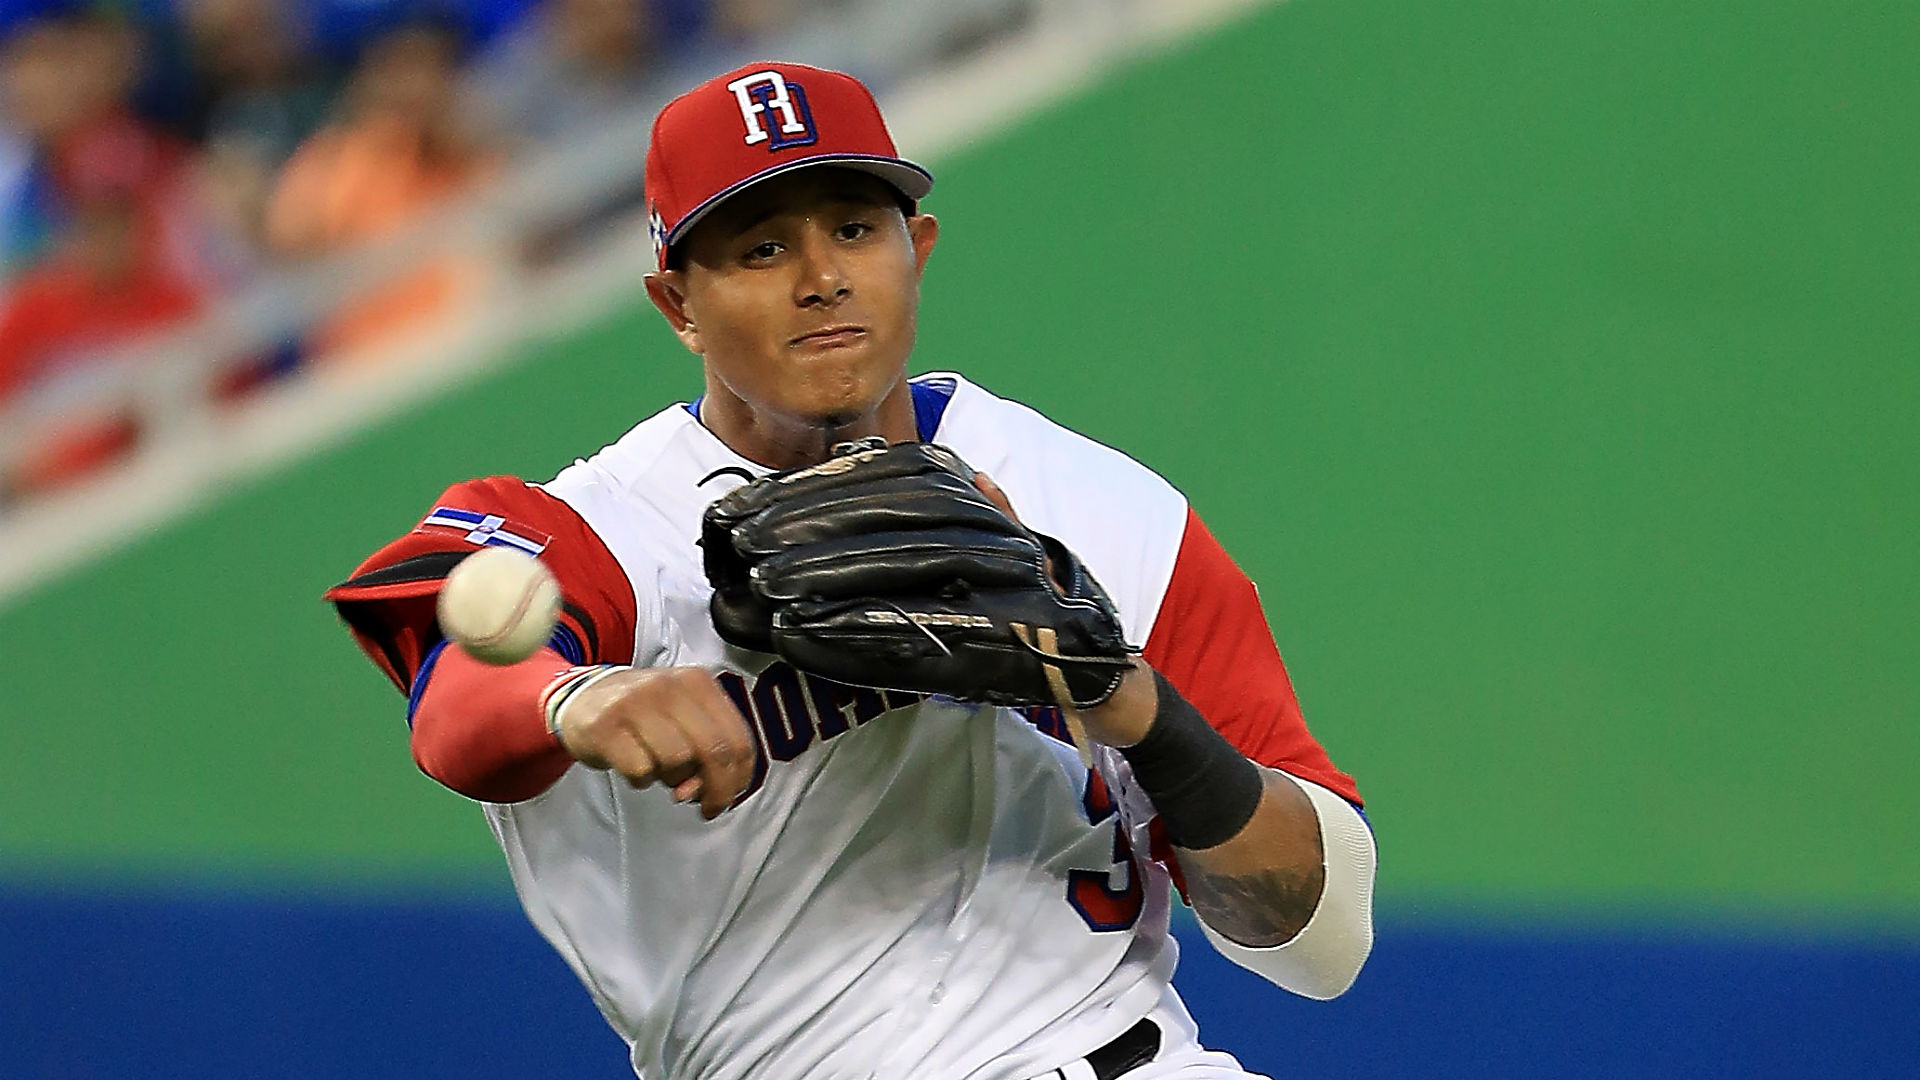 Puerto Rico beat USA to advance to WBC semis